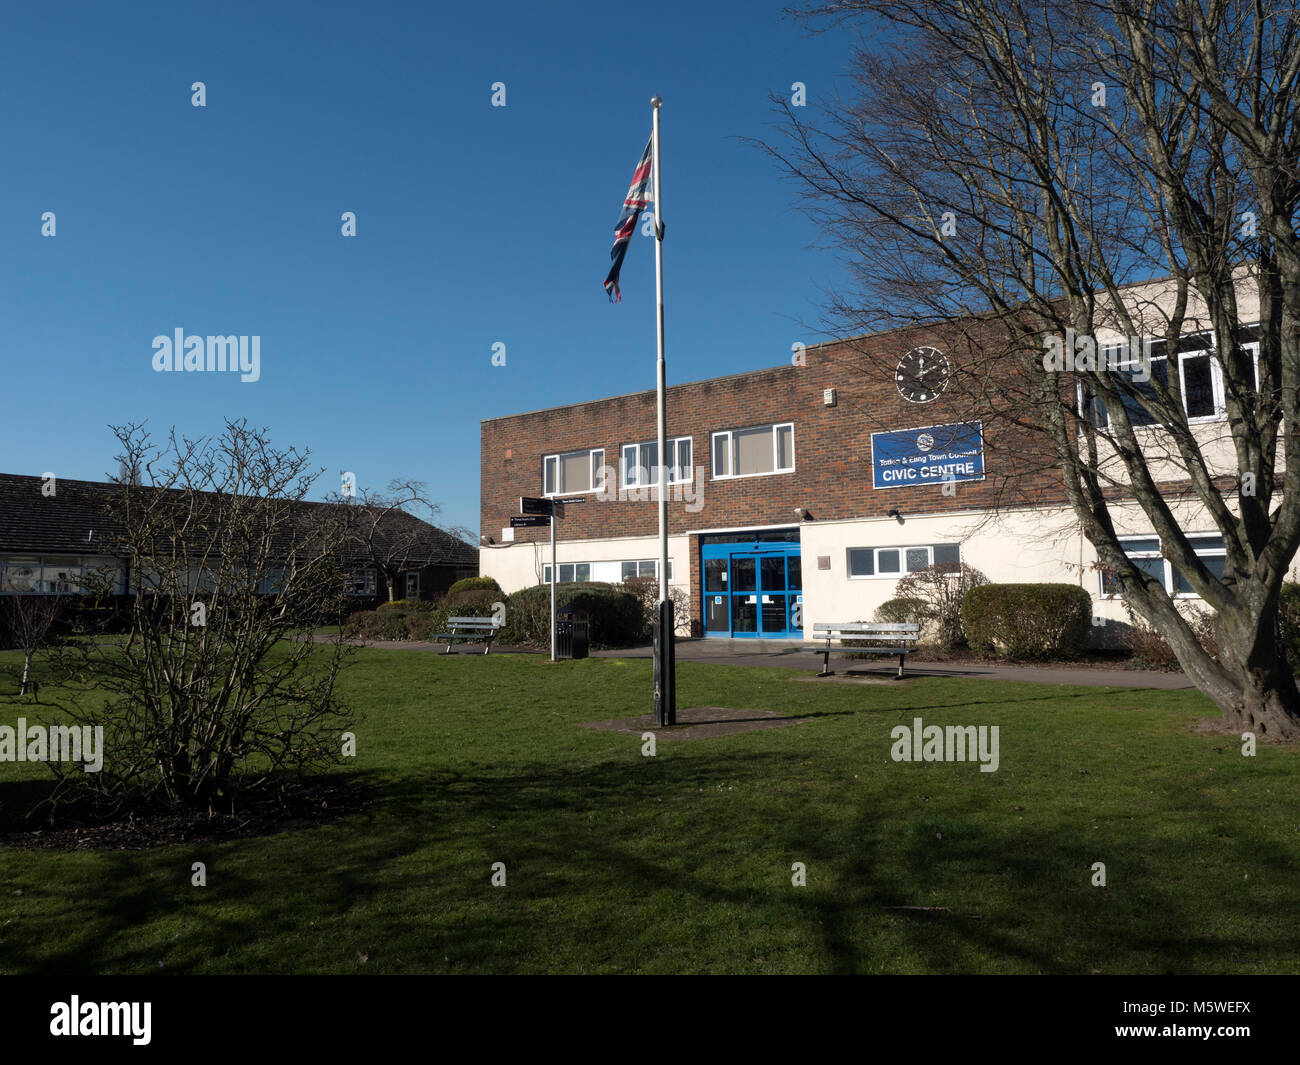 Civic Centre and Town Council Offices, Totton, New Forest, Hampshire, England, UK - Stock Image